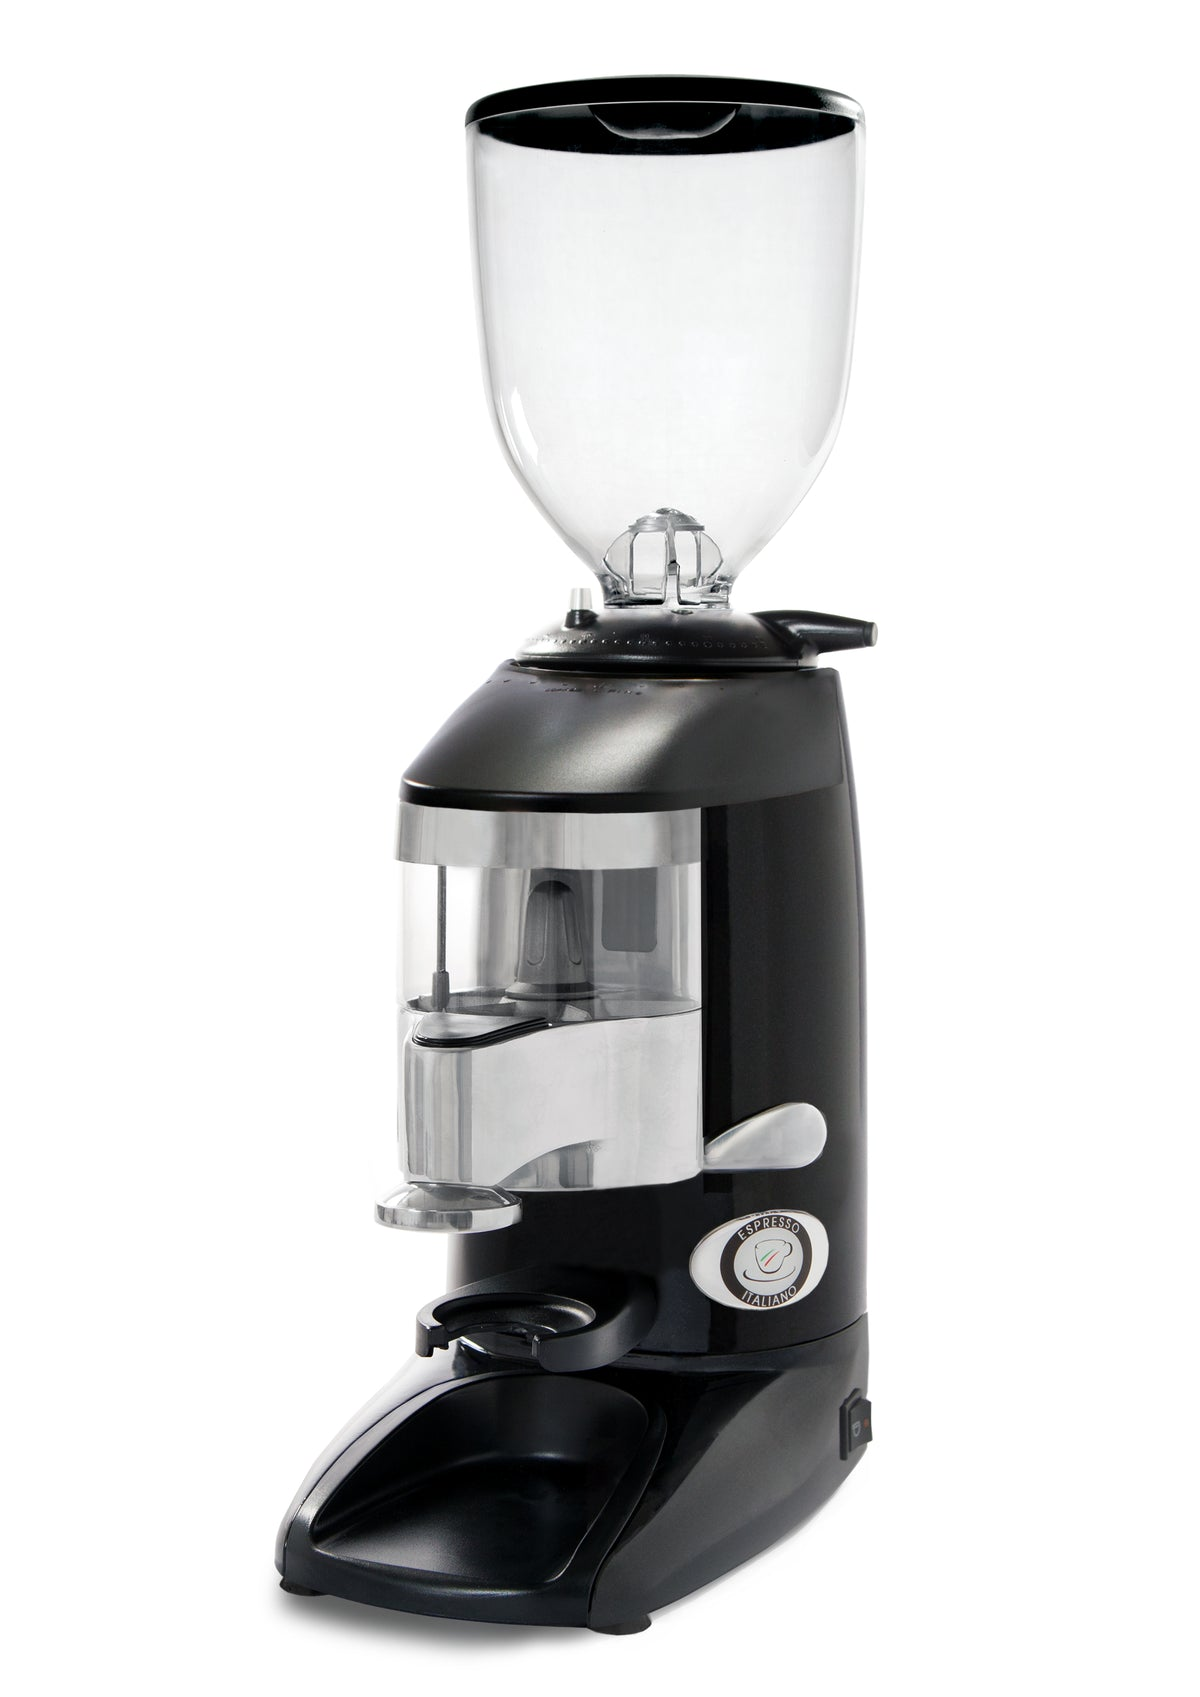 WEGA | MAX 6.4 A AUTOMATIC | COFFEE GRINDER | (USA ONLY)